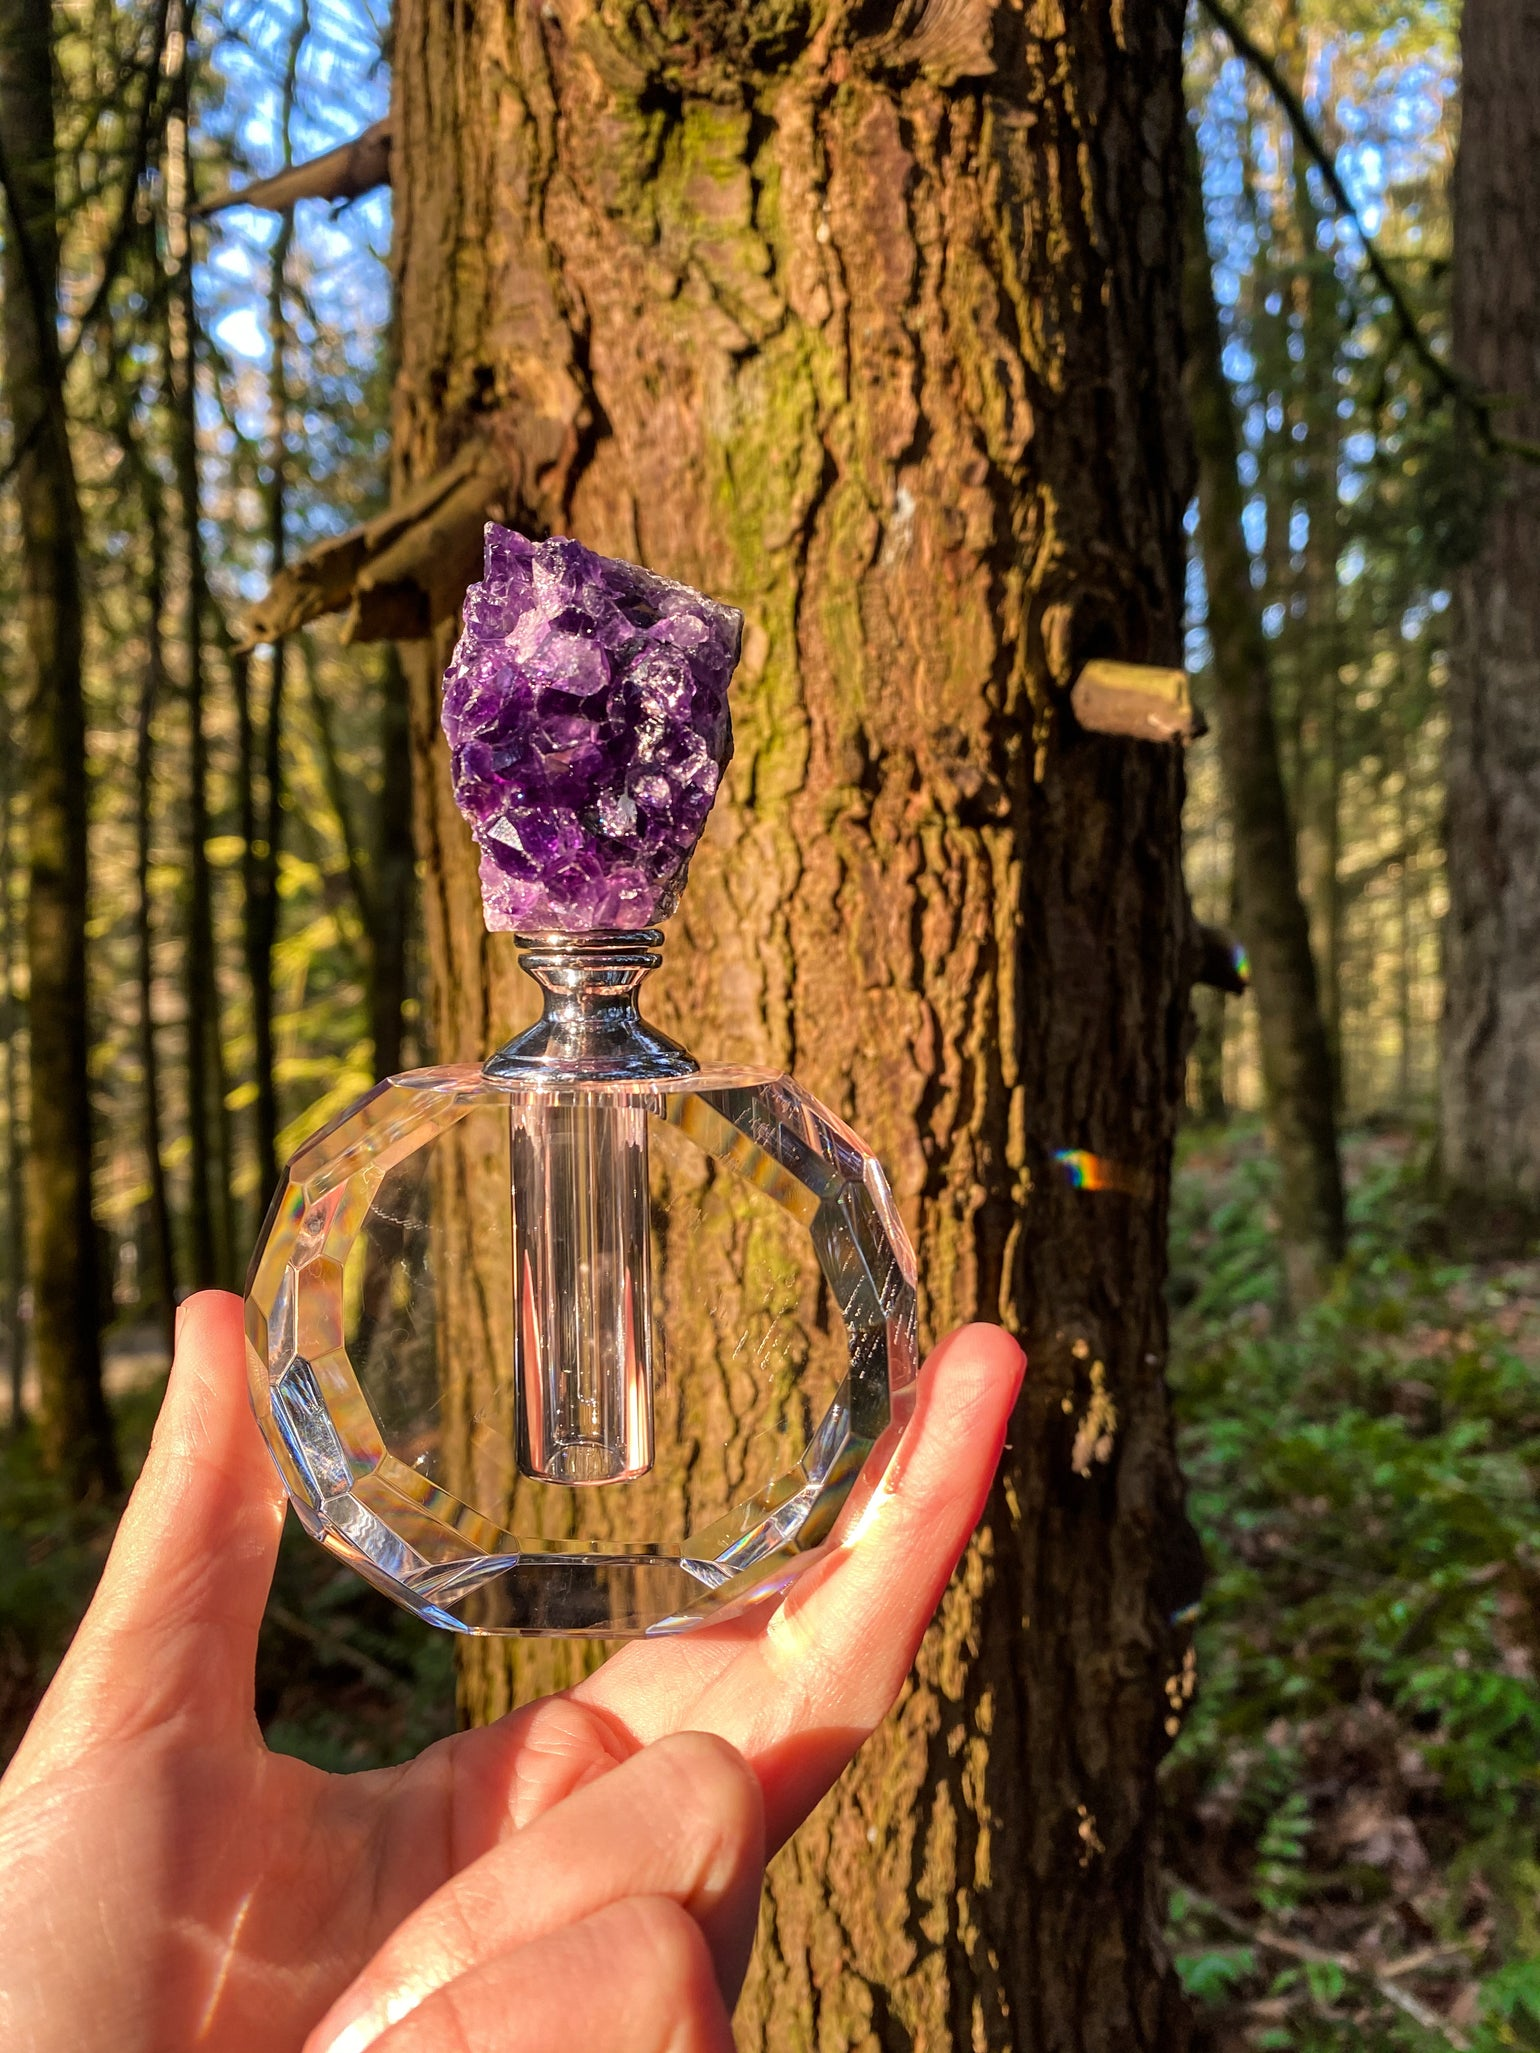 Image of candied pears luxury perfume